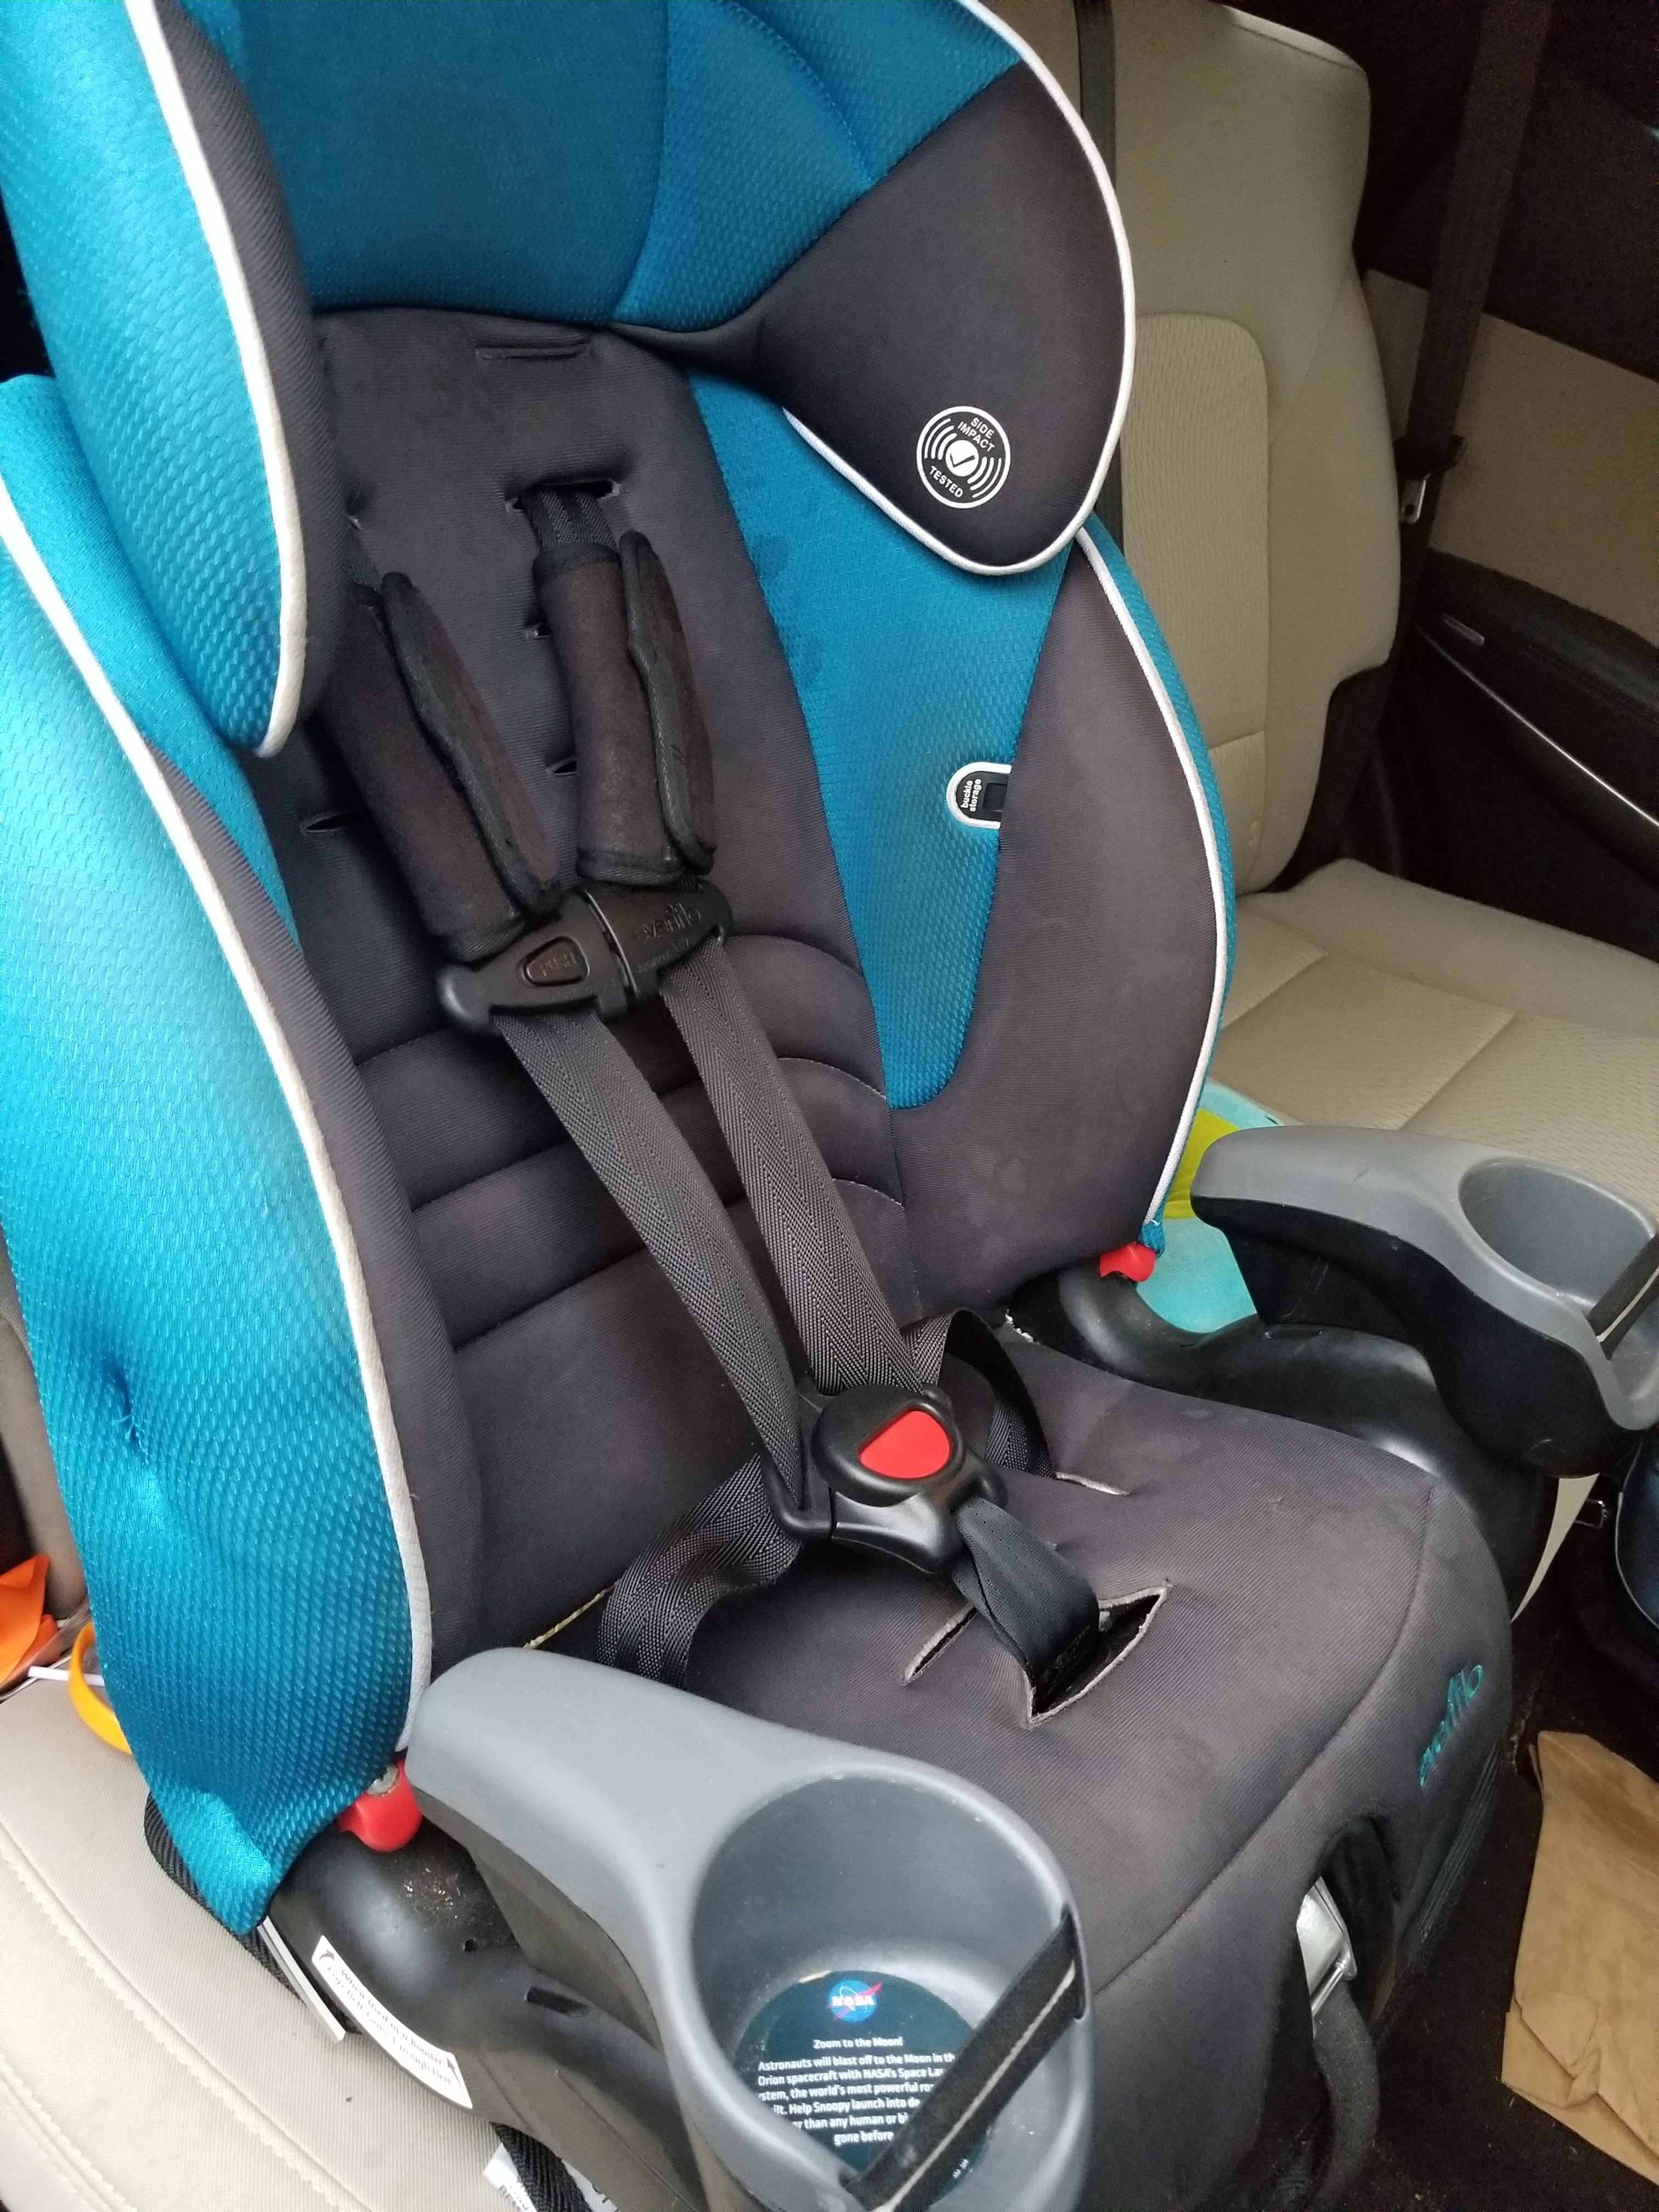 Astounding Free Toddler Car Seat W 5 Point Harness News Ocoug Best Dining Table And Chair Ideas Images Ocougorg